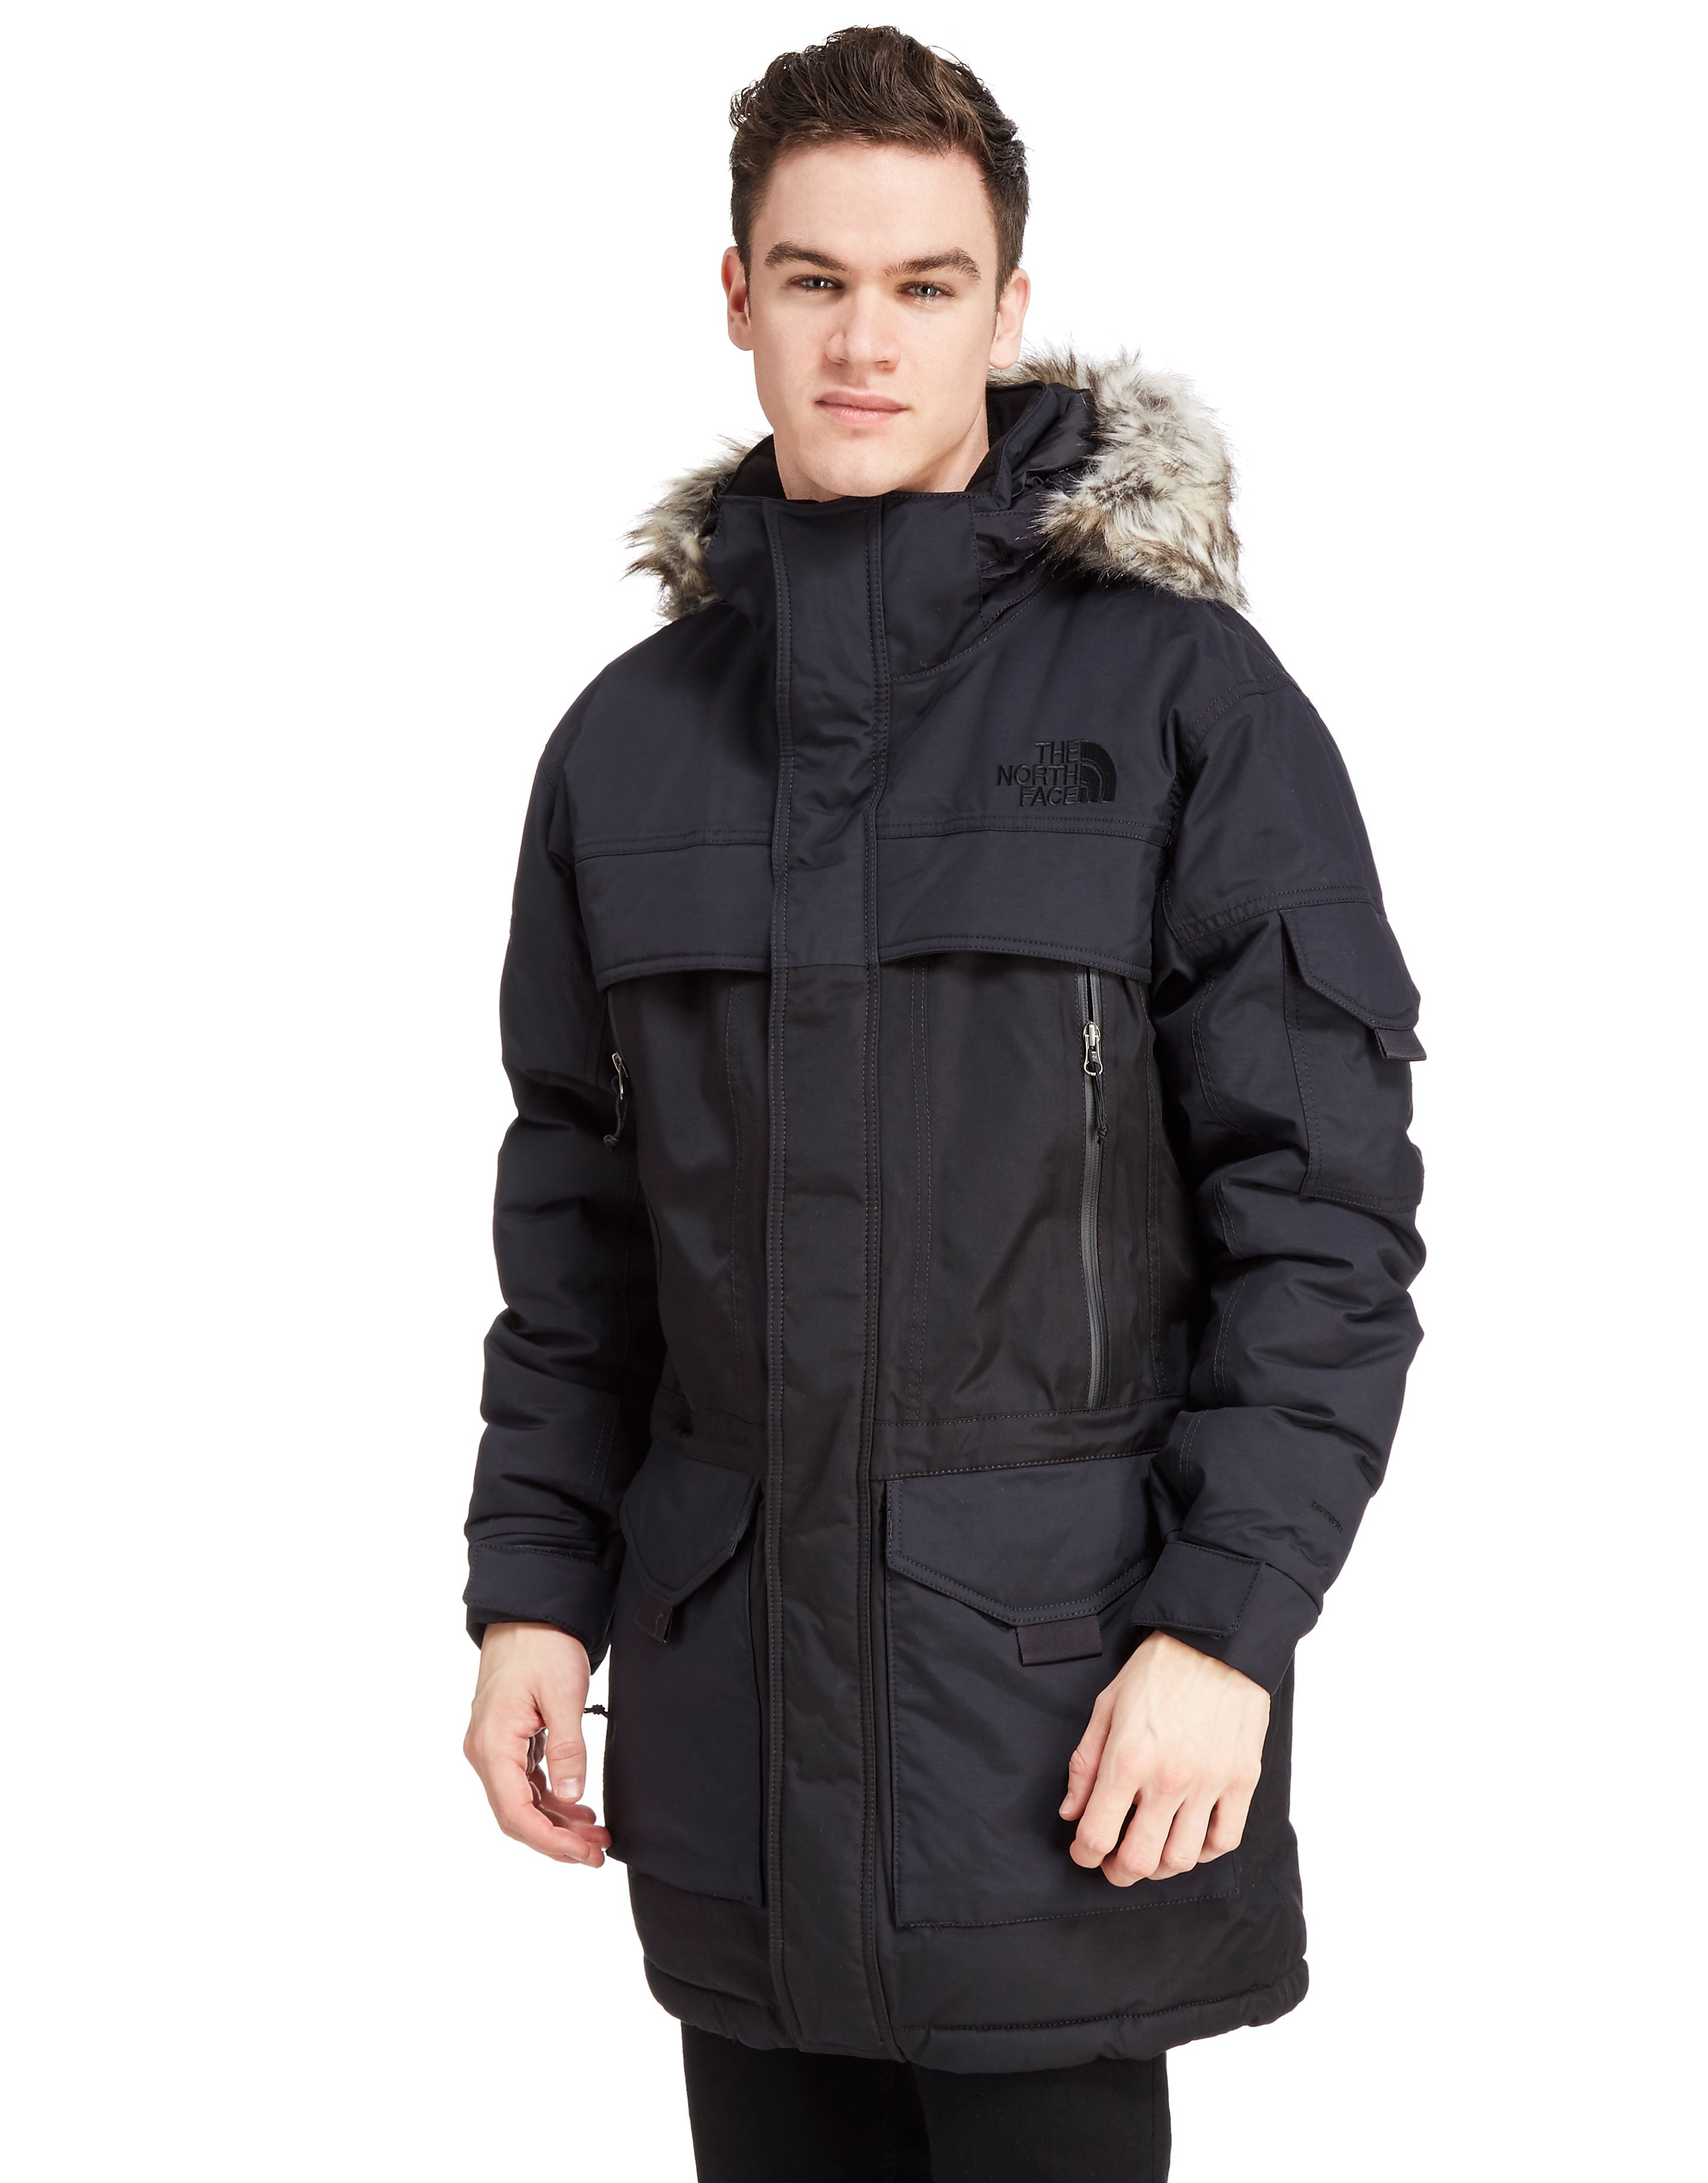 The North Face McMurdo II Parka Jacket